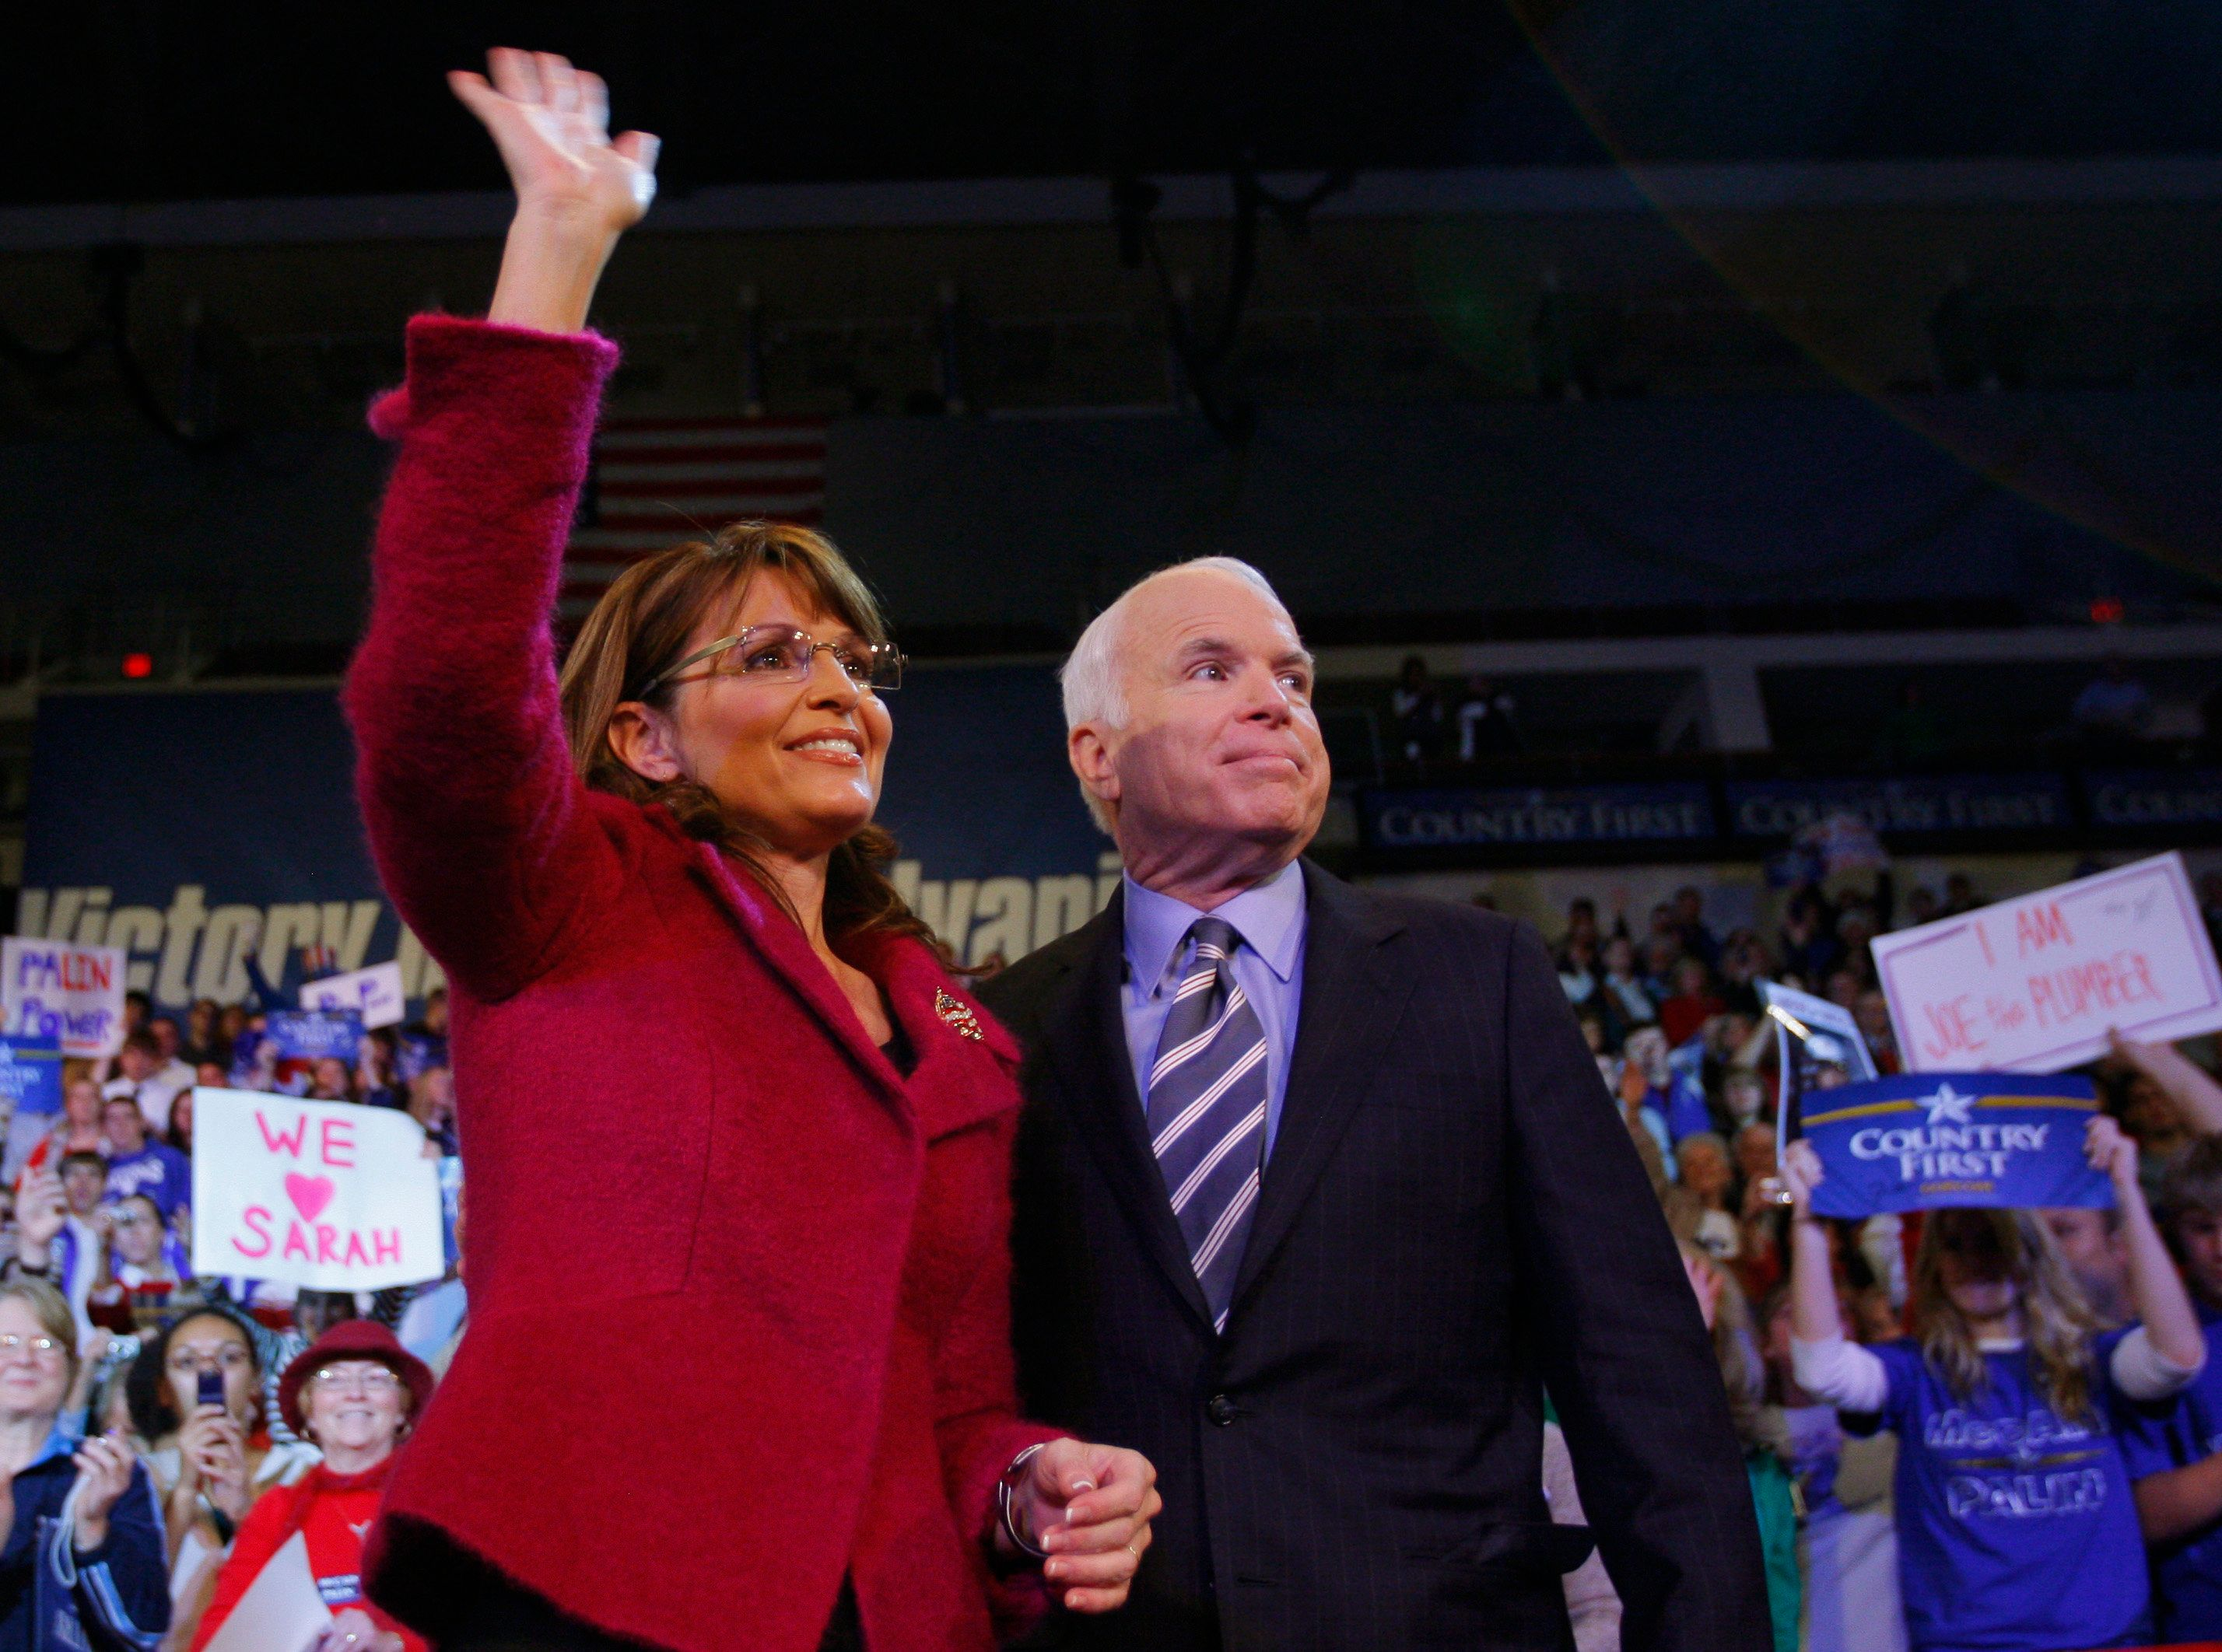 U.S. Republican vice-presidential nominee Alaska Governor Sarah Palin (L) and U.S. Republican presidential nominee Senator John McCain (R-AZ) stand onstage together at a campaign rally in Hershey, Pennsylvania October 28, 2008.   REUTERS/Brian Snyder    (UNITED STATES) US PRESIDENTIAL ELECTION CAMPAIGN 2008 (USA)